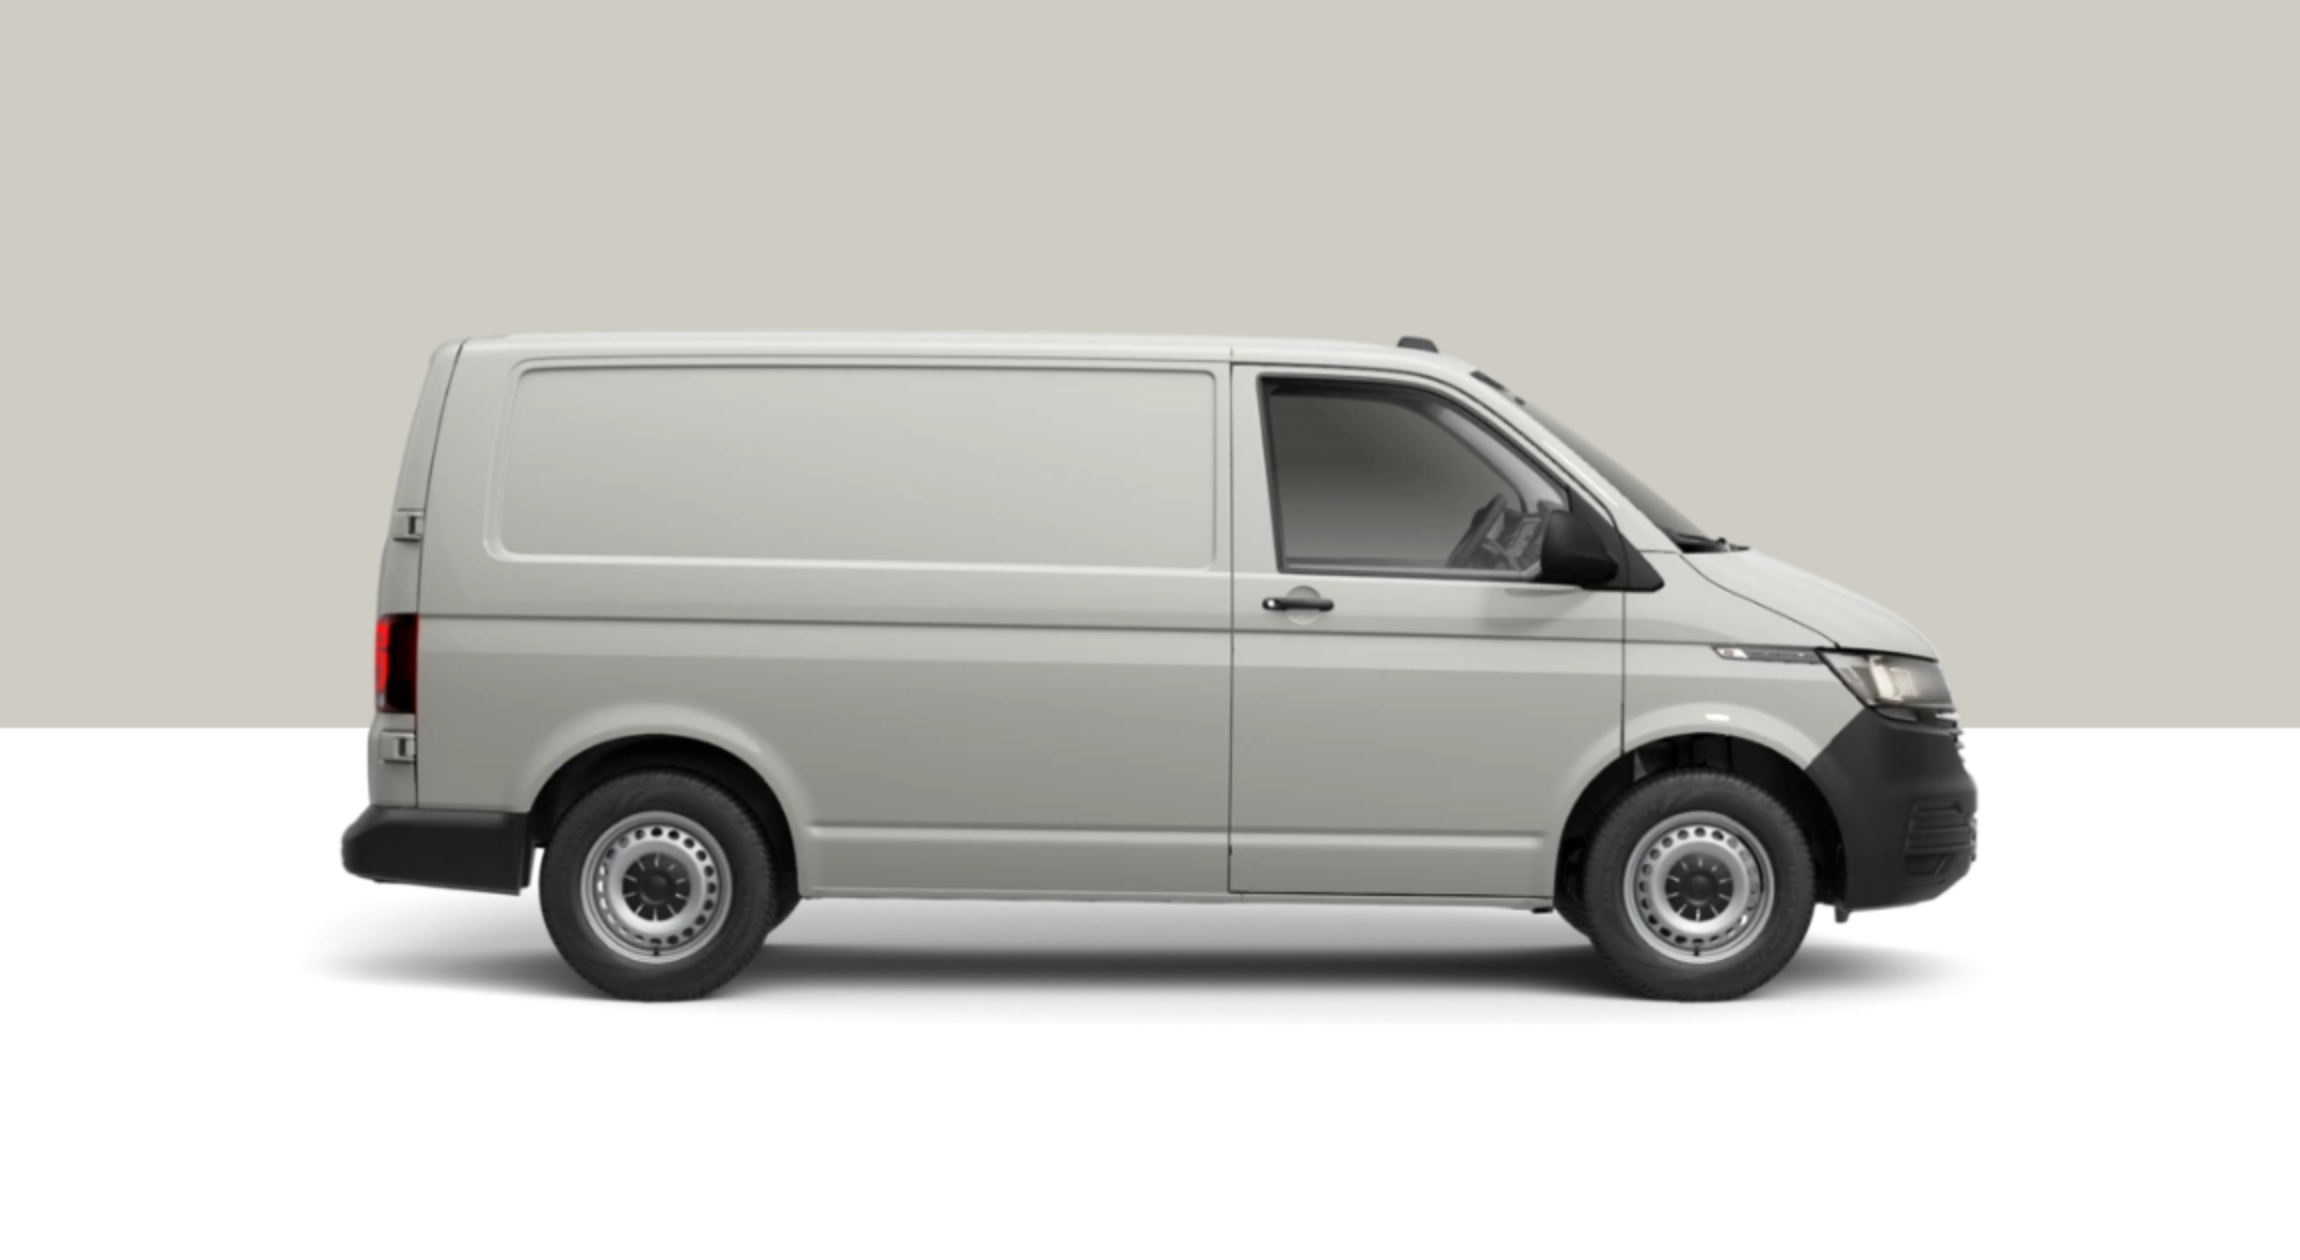 Medium Van Kits (VW Transporter, Ford Transit Custom, Vauxhall Vivaro, etc)